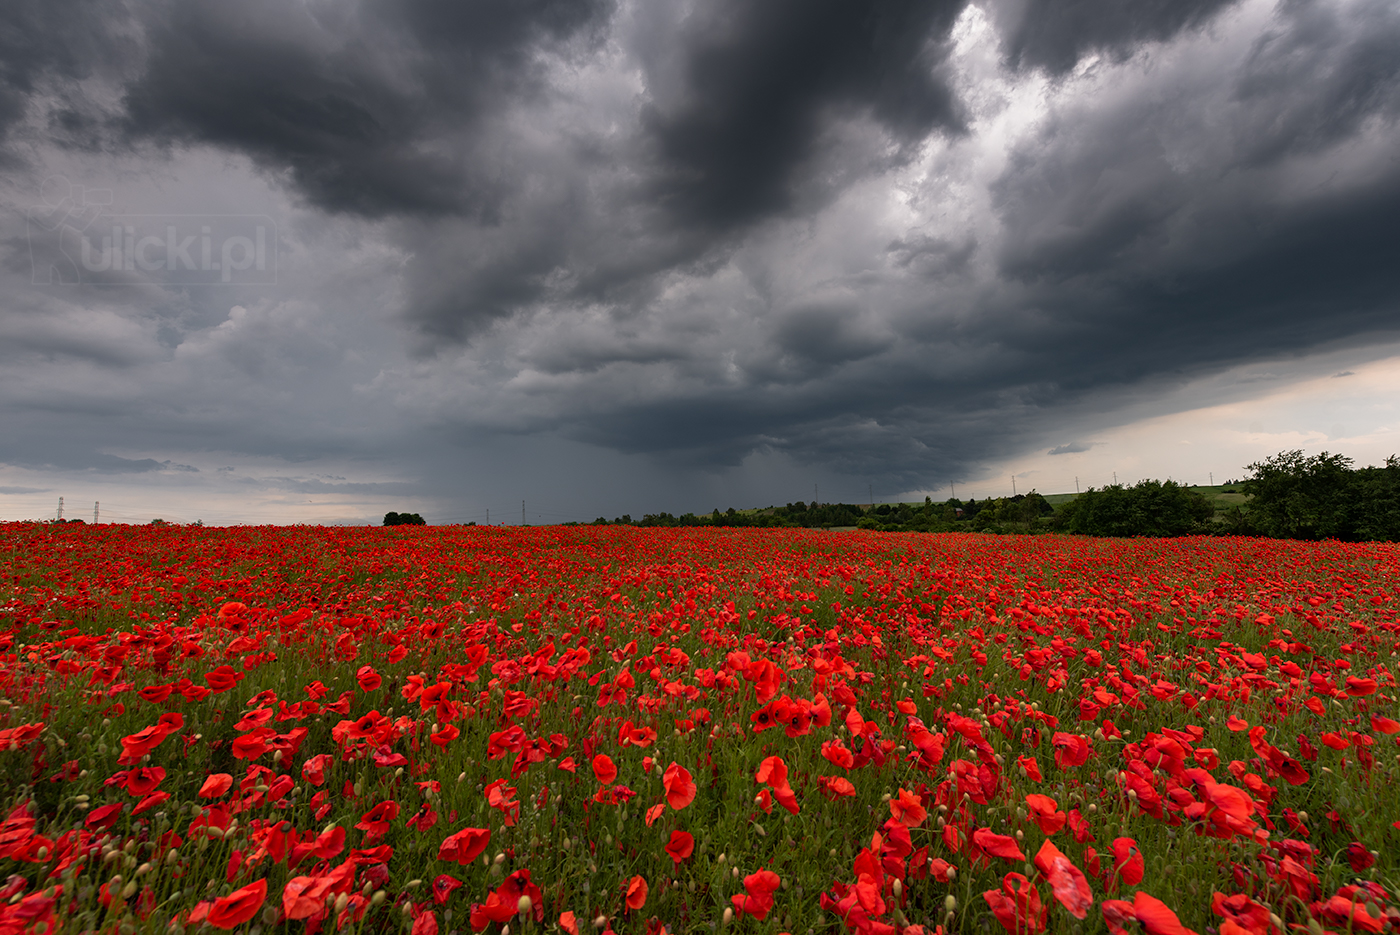 I Photographed Poppy Fields During A Storm (6 Pics)